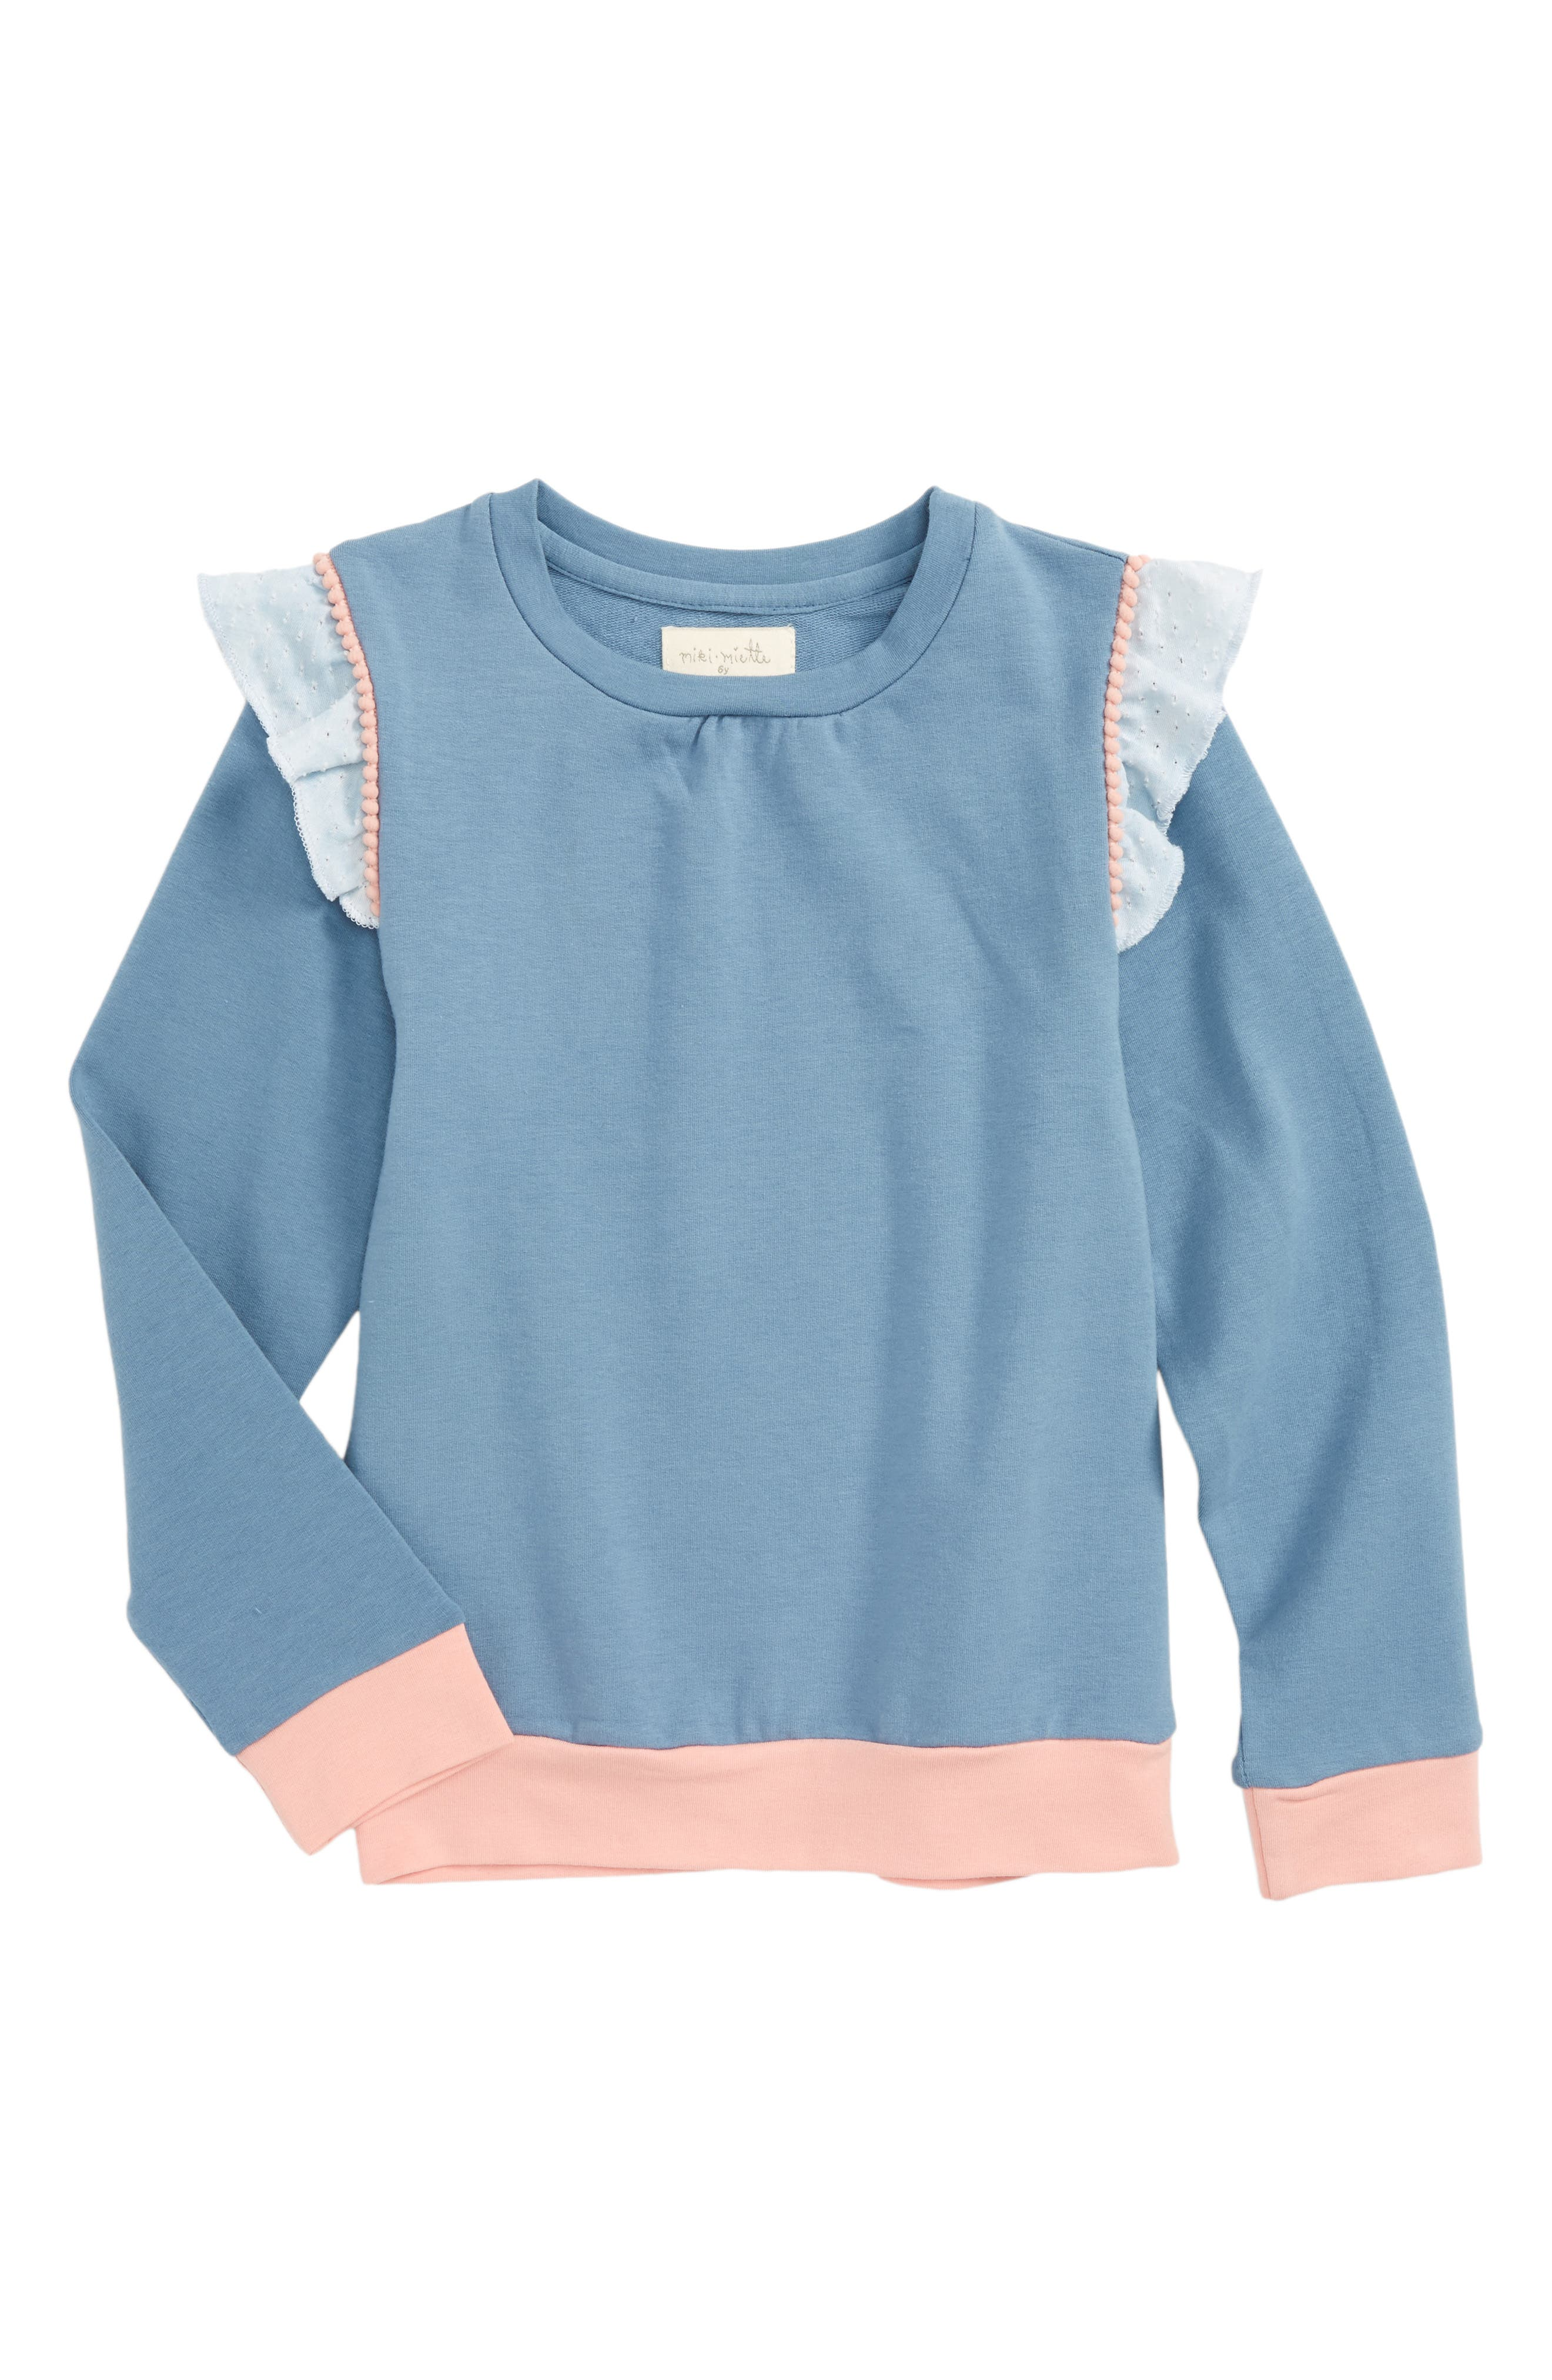 Alternate Image 1 Selected - Miki Miette Cora Top (Toddler Girls & Little Girls)